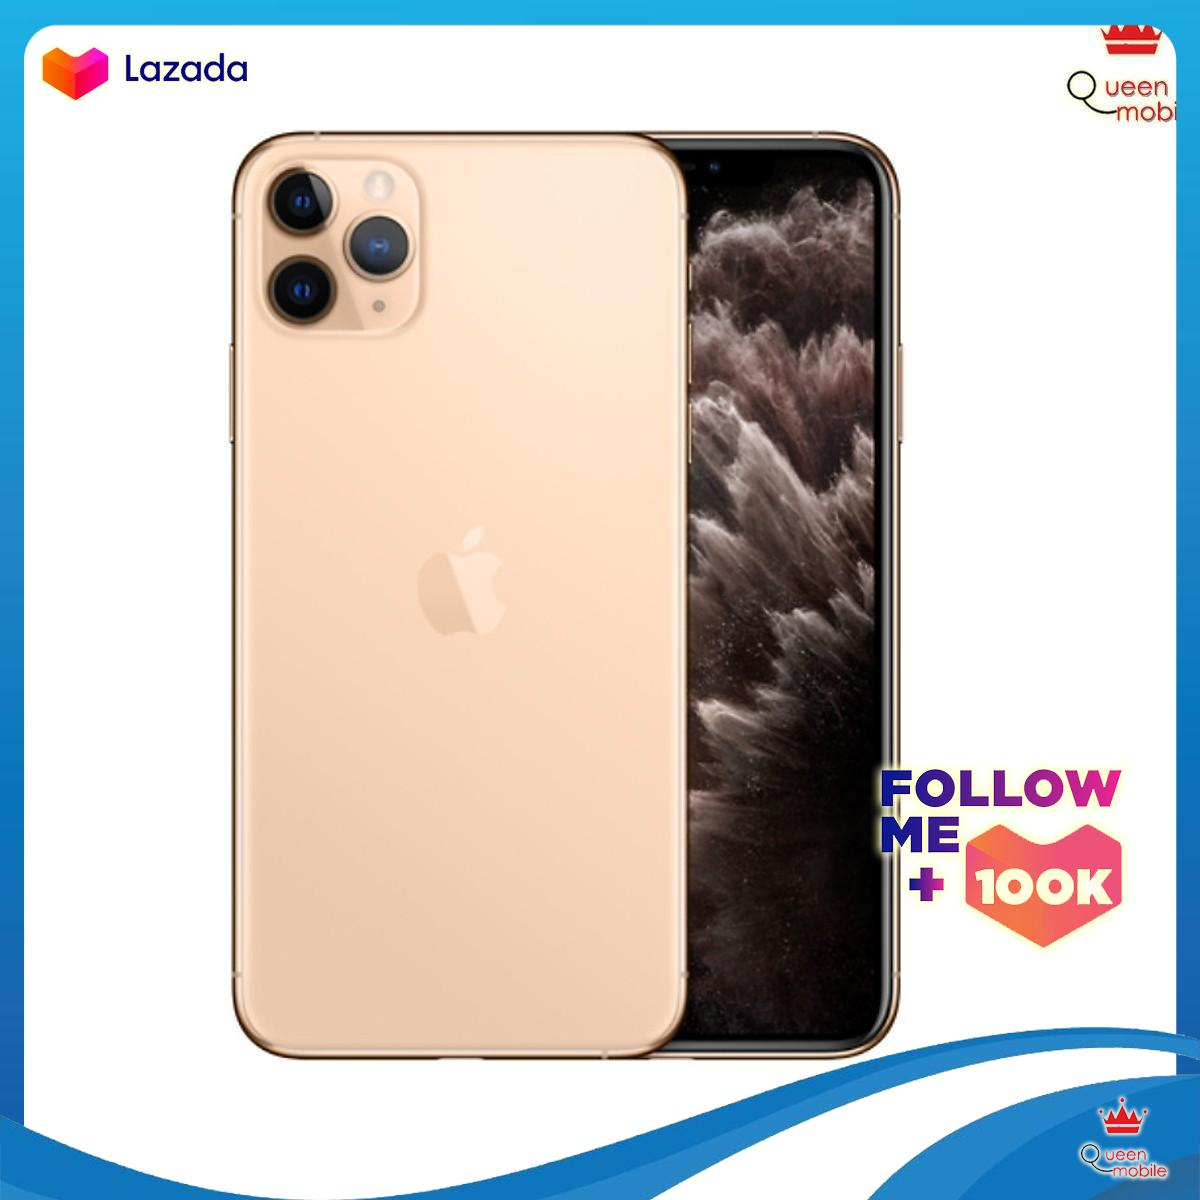 [HOT DEAL -QUEEN MOBILE] Điện Thoại iPhone 11 Pro Max...